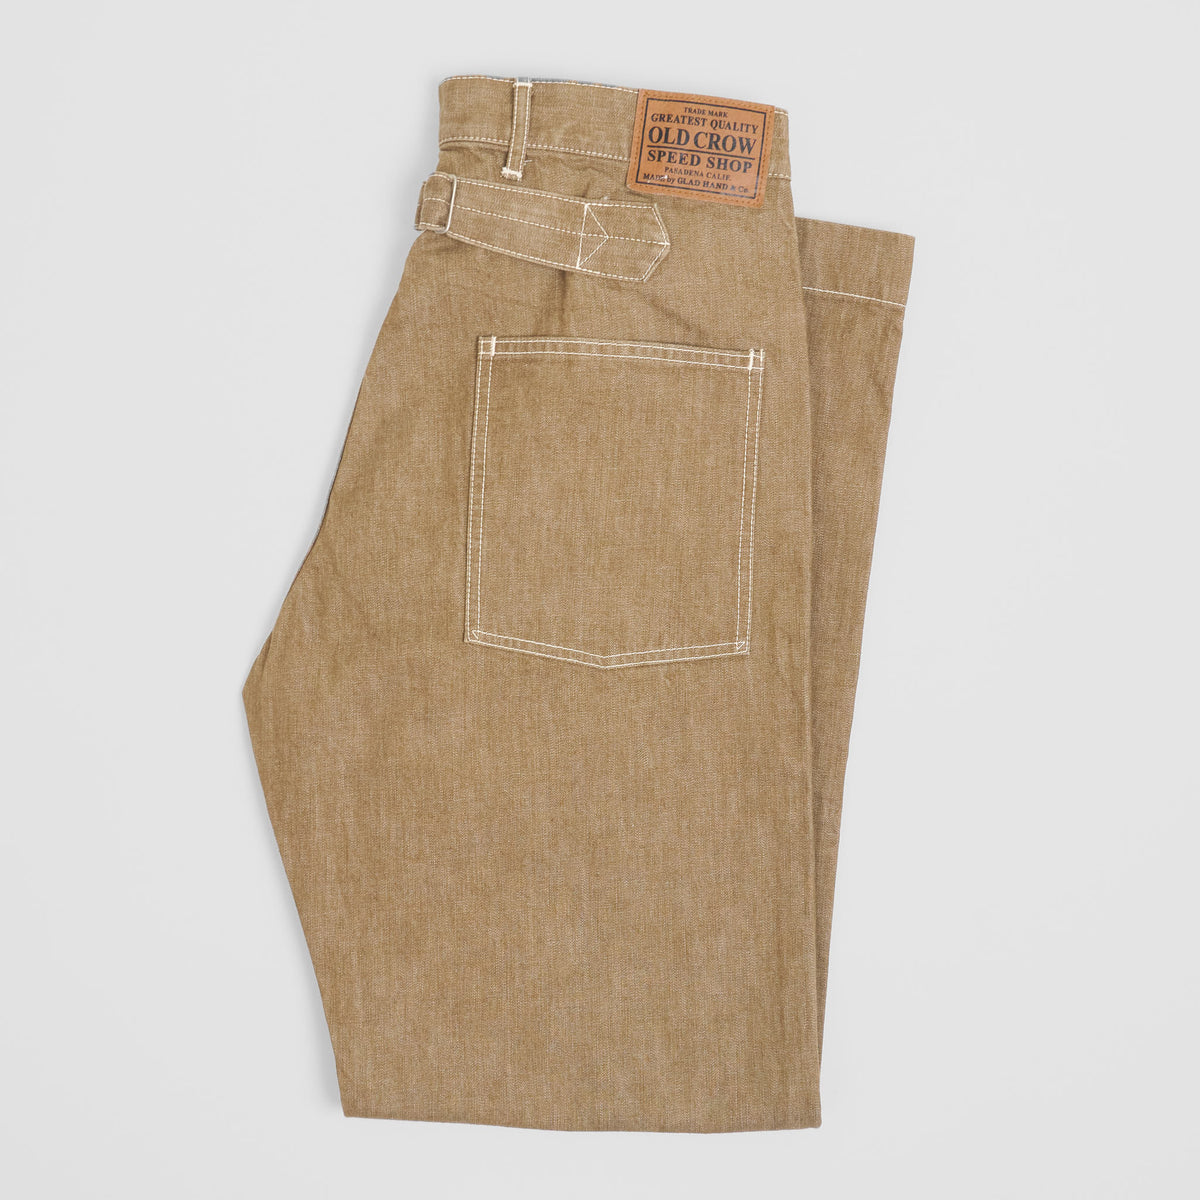 Old Crow Speed Shop by Glad Hand & Co. Baker Workpants